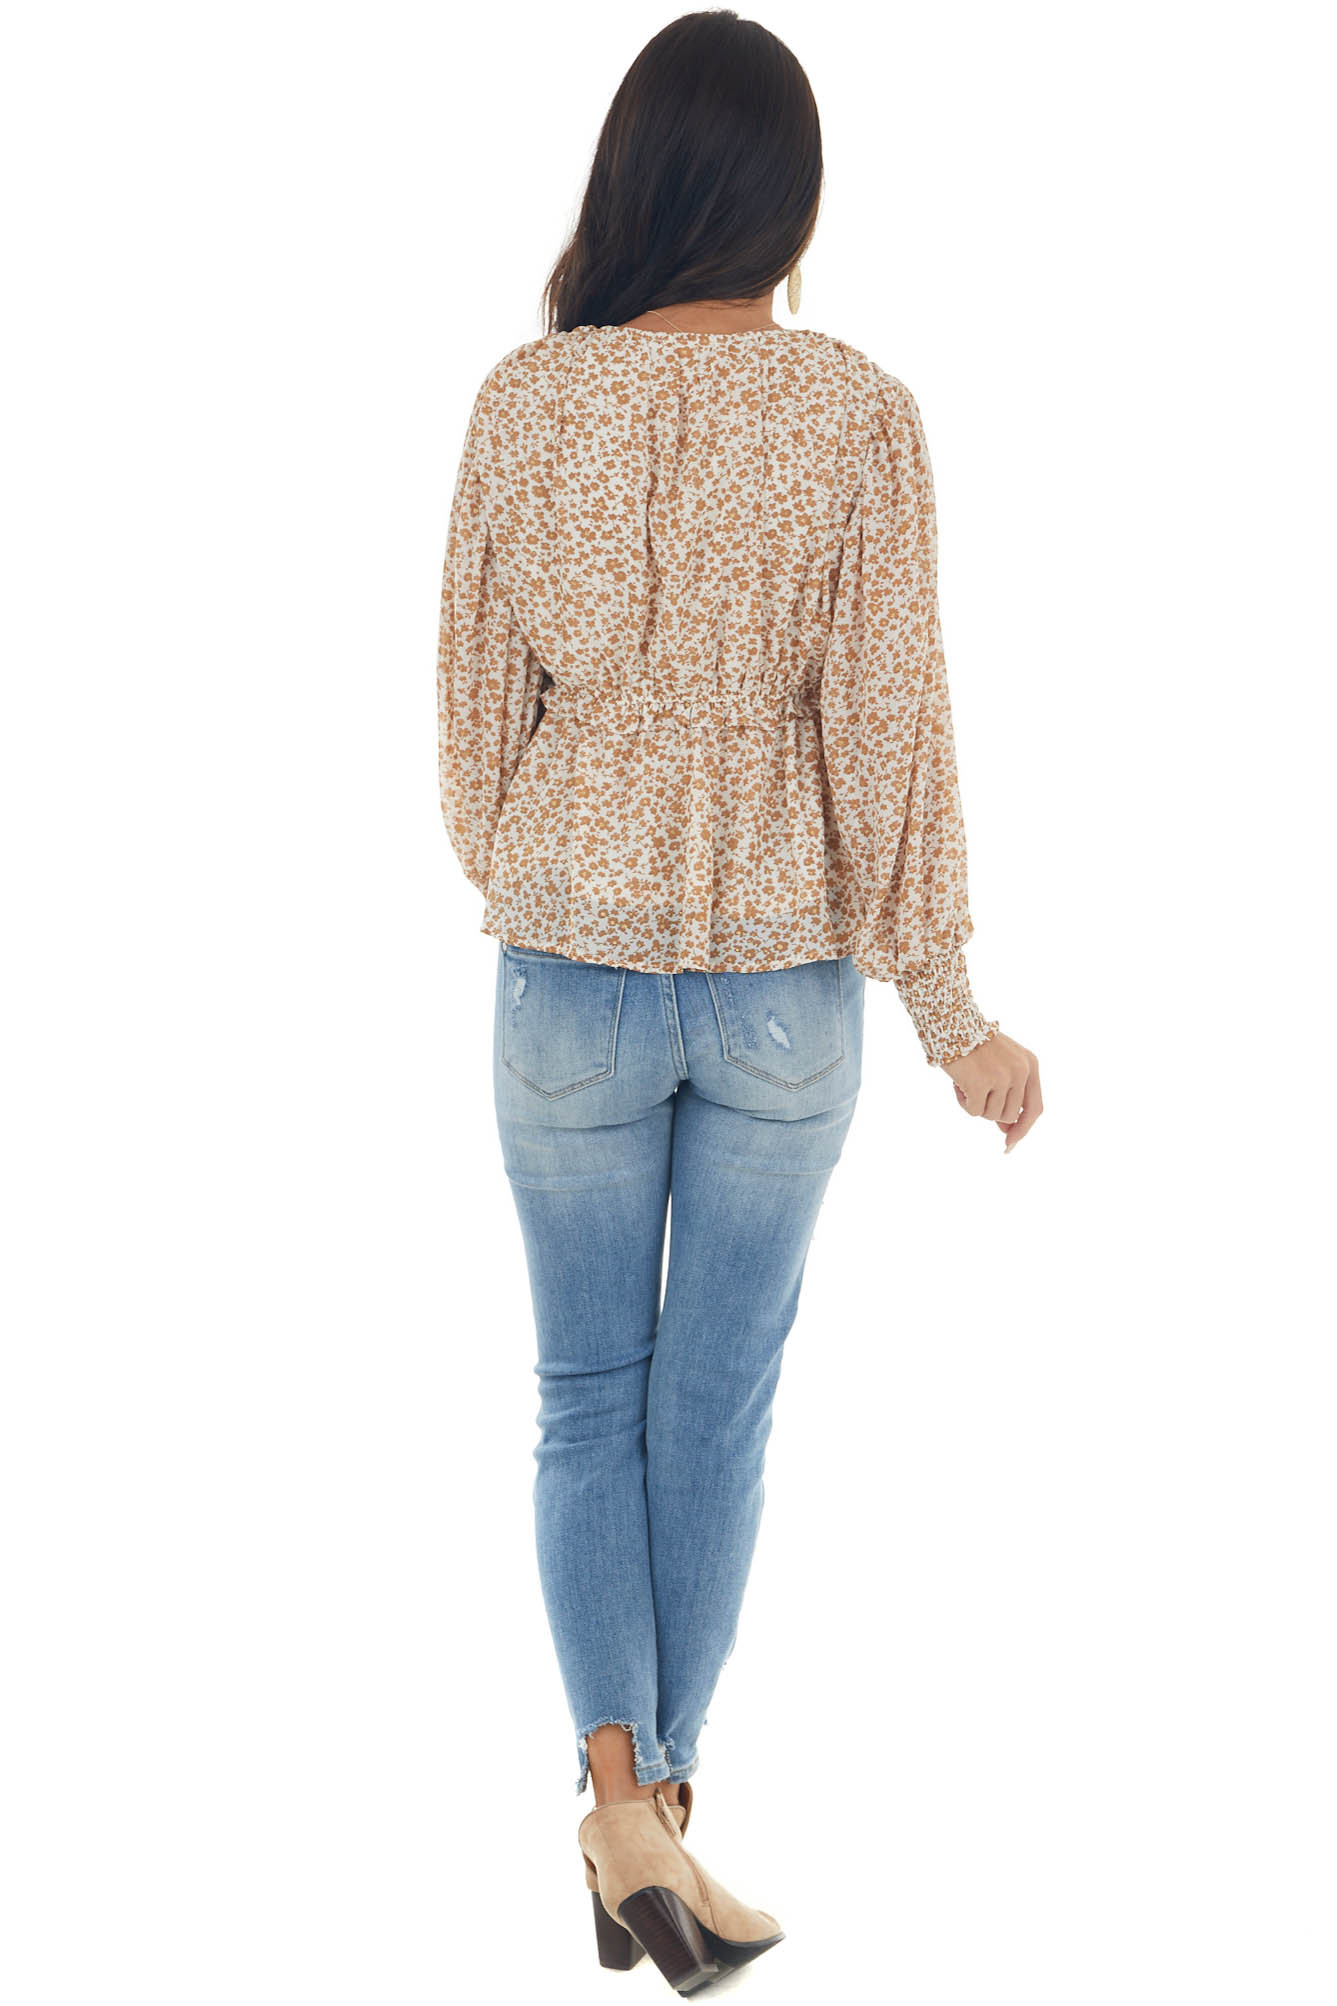 Brown Sugar and Gold Glitter Ditsy Floral Top